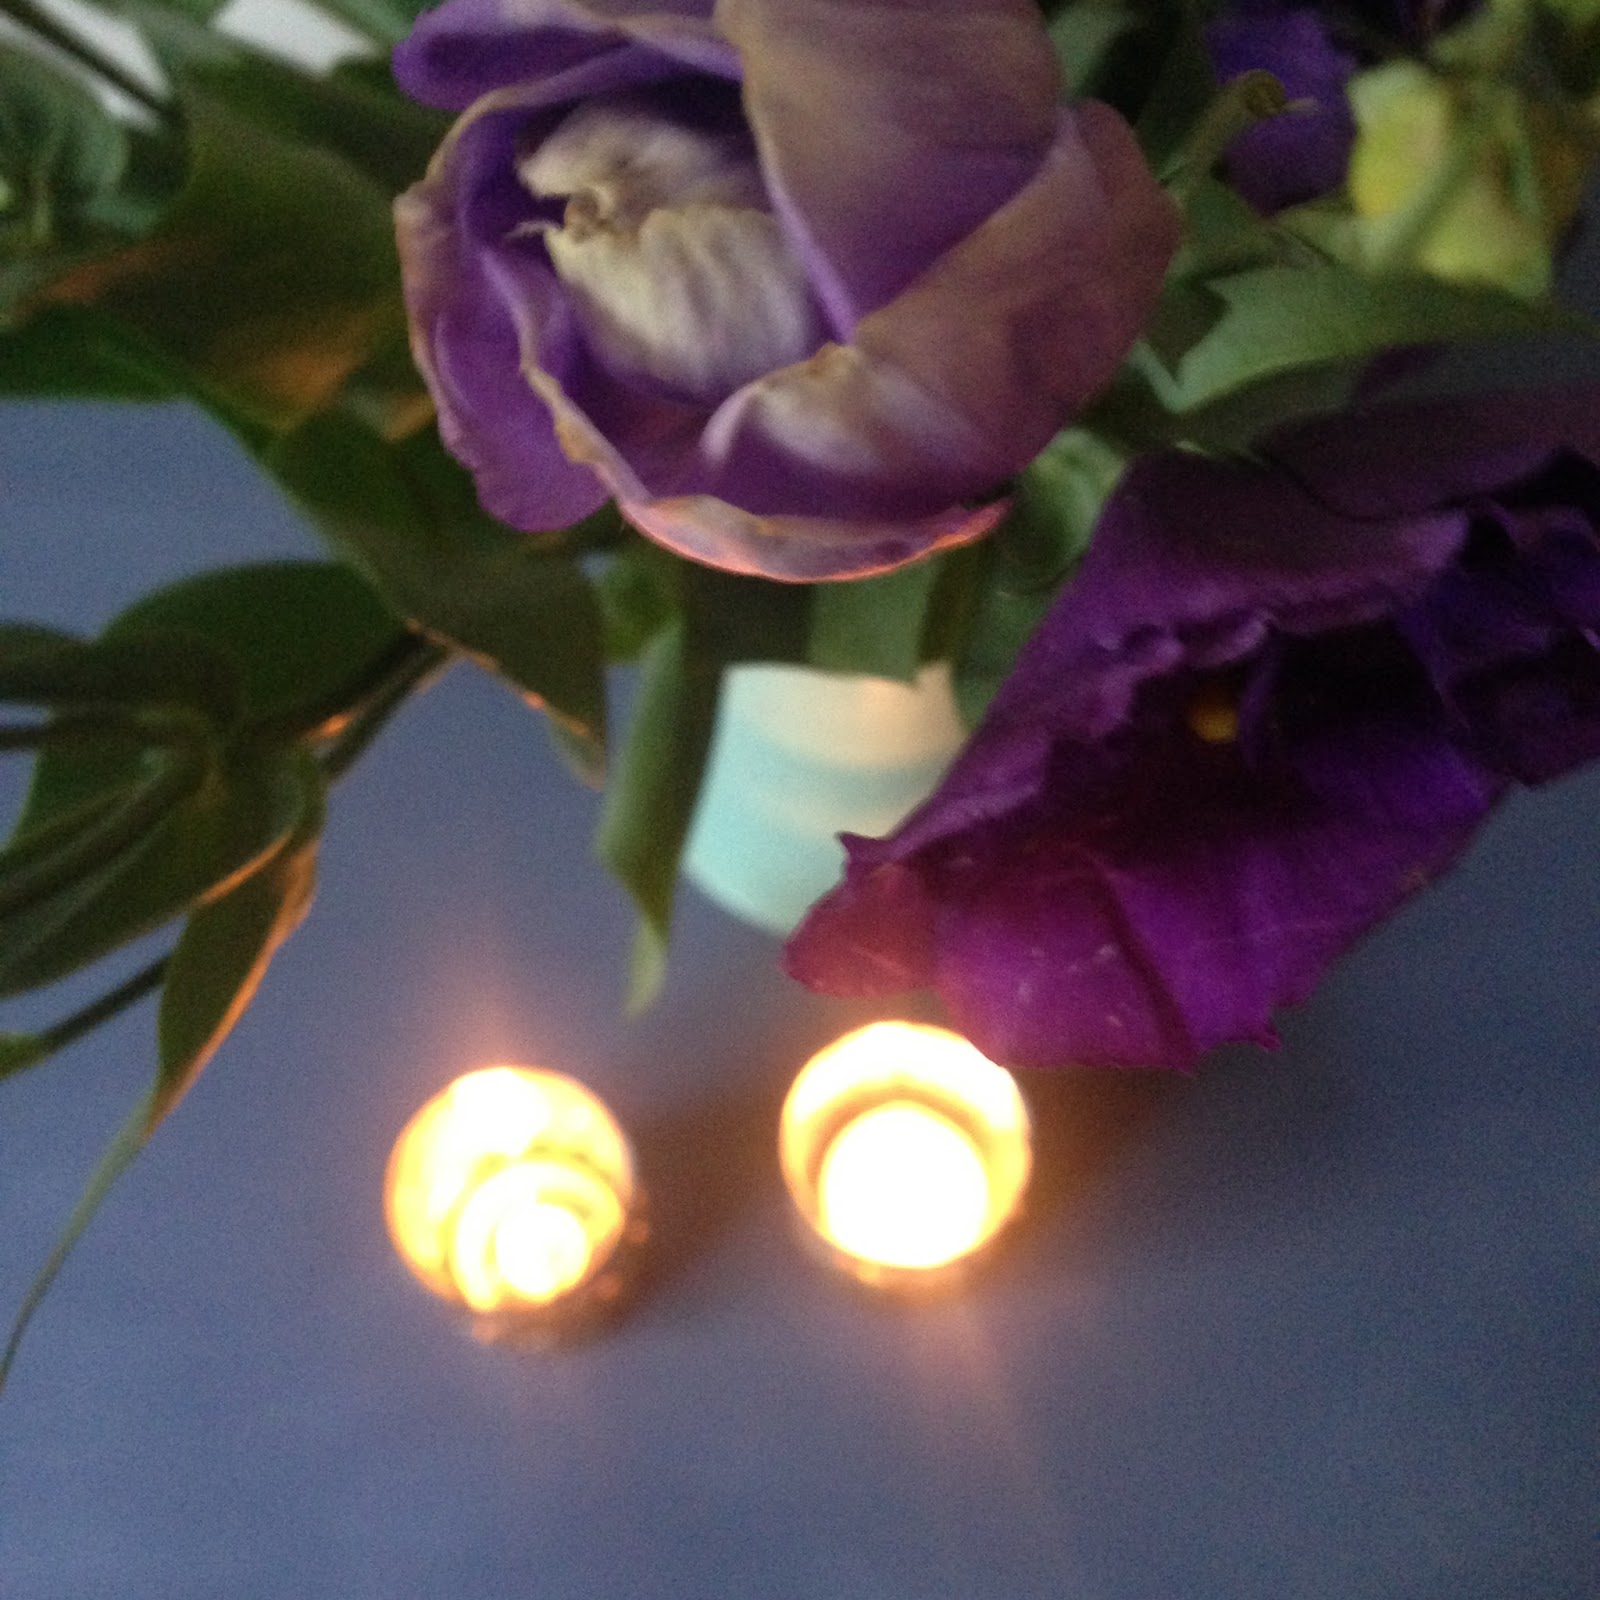 Bowiebelle Vintage Amp Upcycled Furniture Upcycling A Little Touch Of Violet